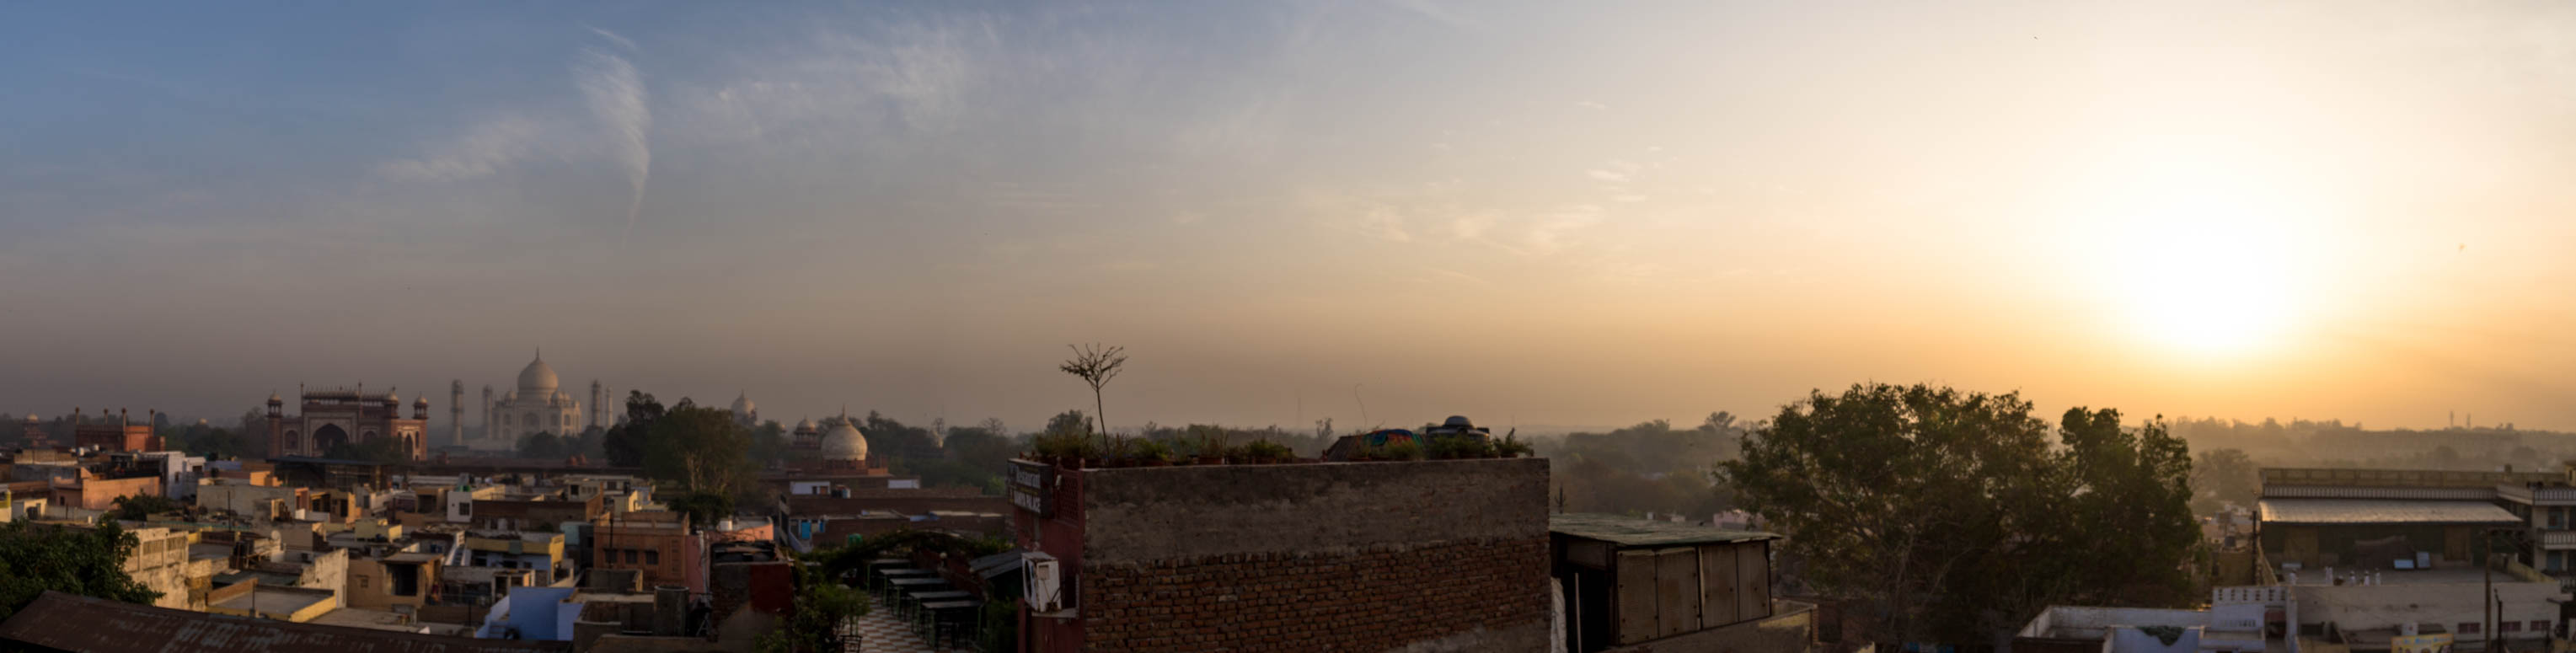 Sunrise in Agra